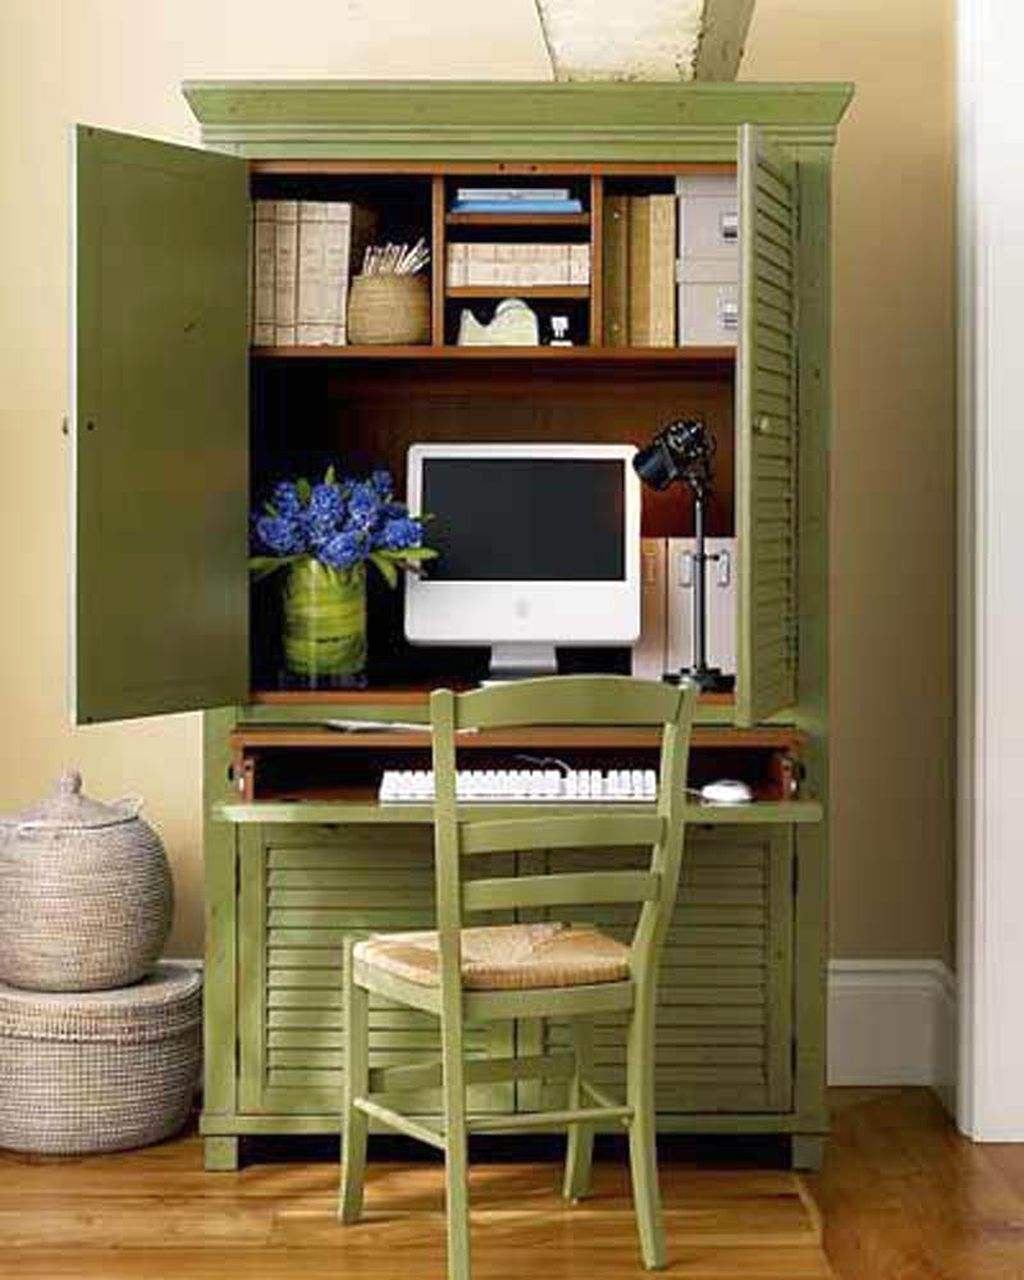 Green cupboard home office design ideas for small spaces for Small room office